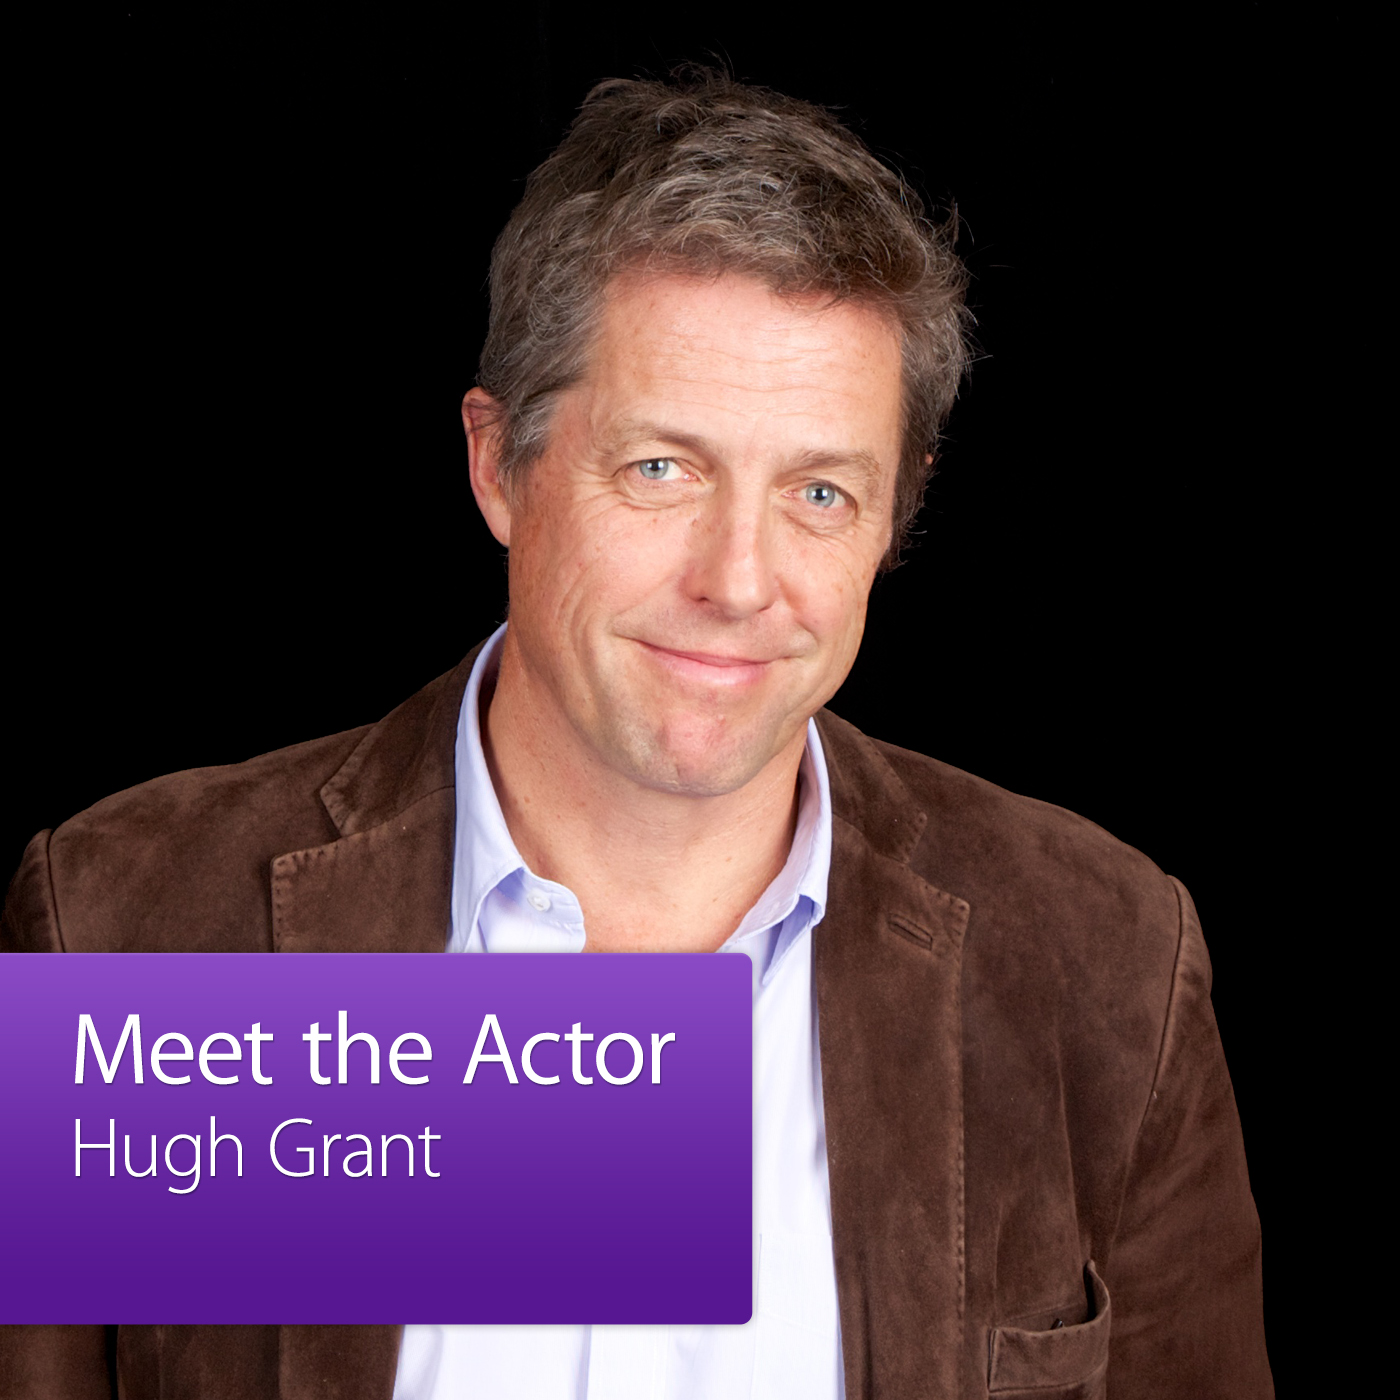 Hugh Grant: Meet the Actor